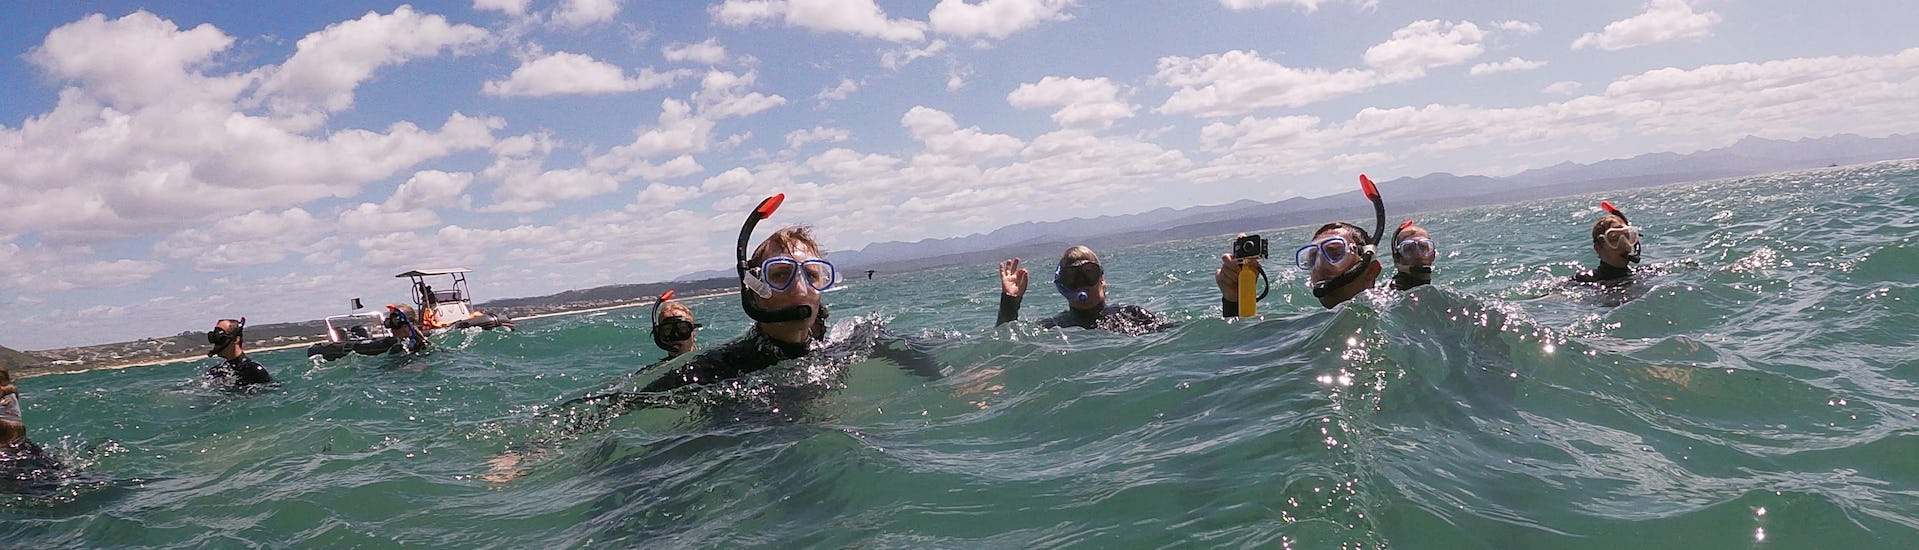 A group of snorkelling enthusiasts are snorkelling during the Snorkeling with Seals in Plettenberg Bay organised by Offshore Adventures.